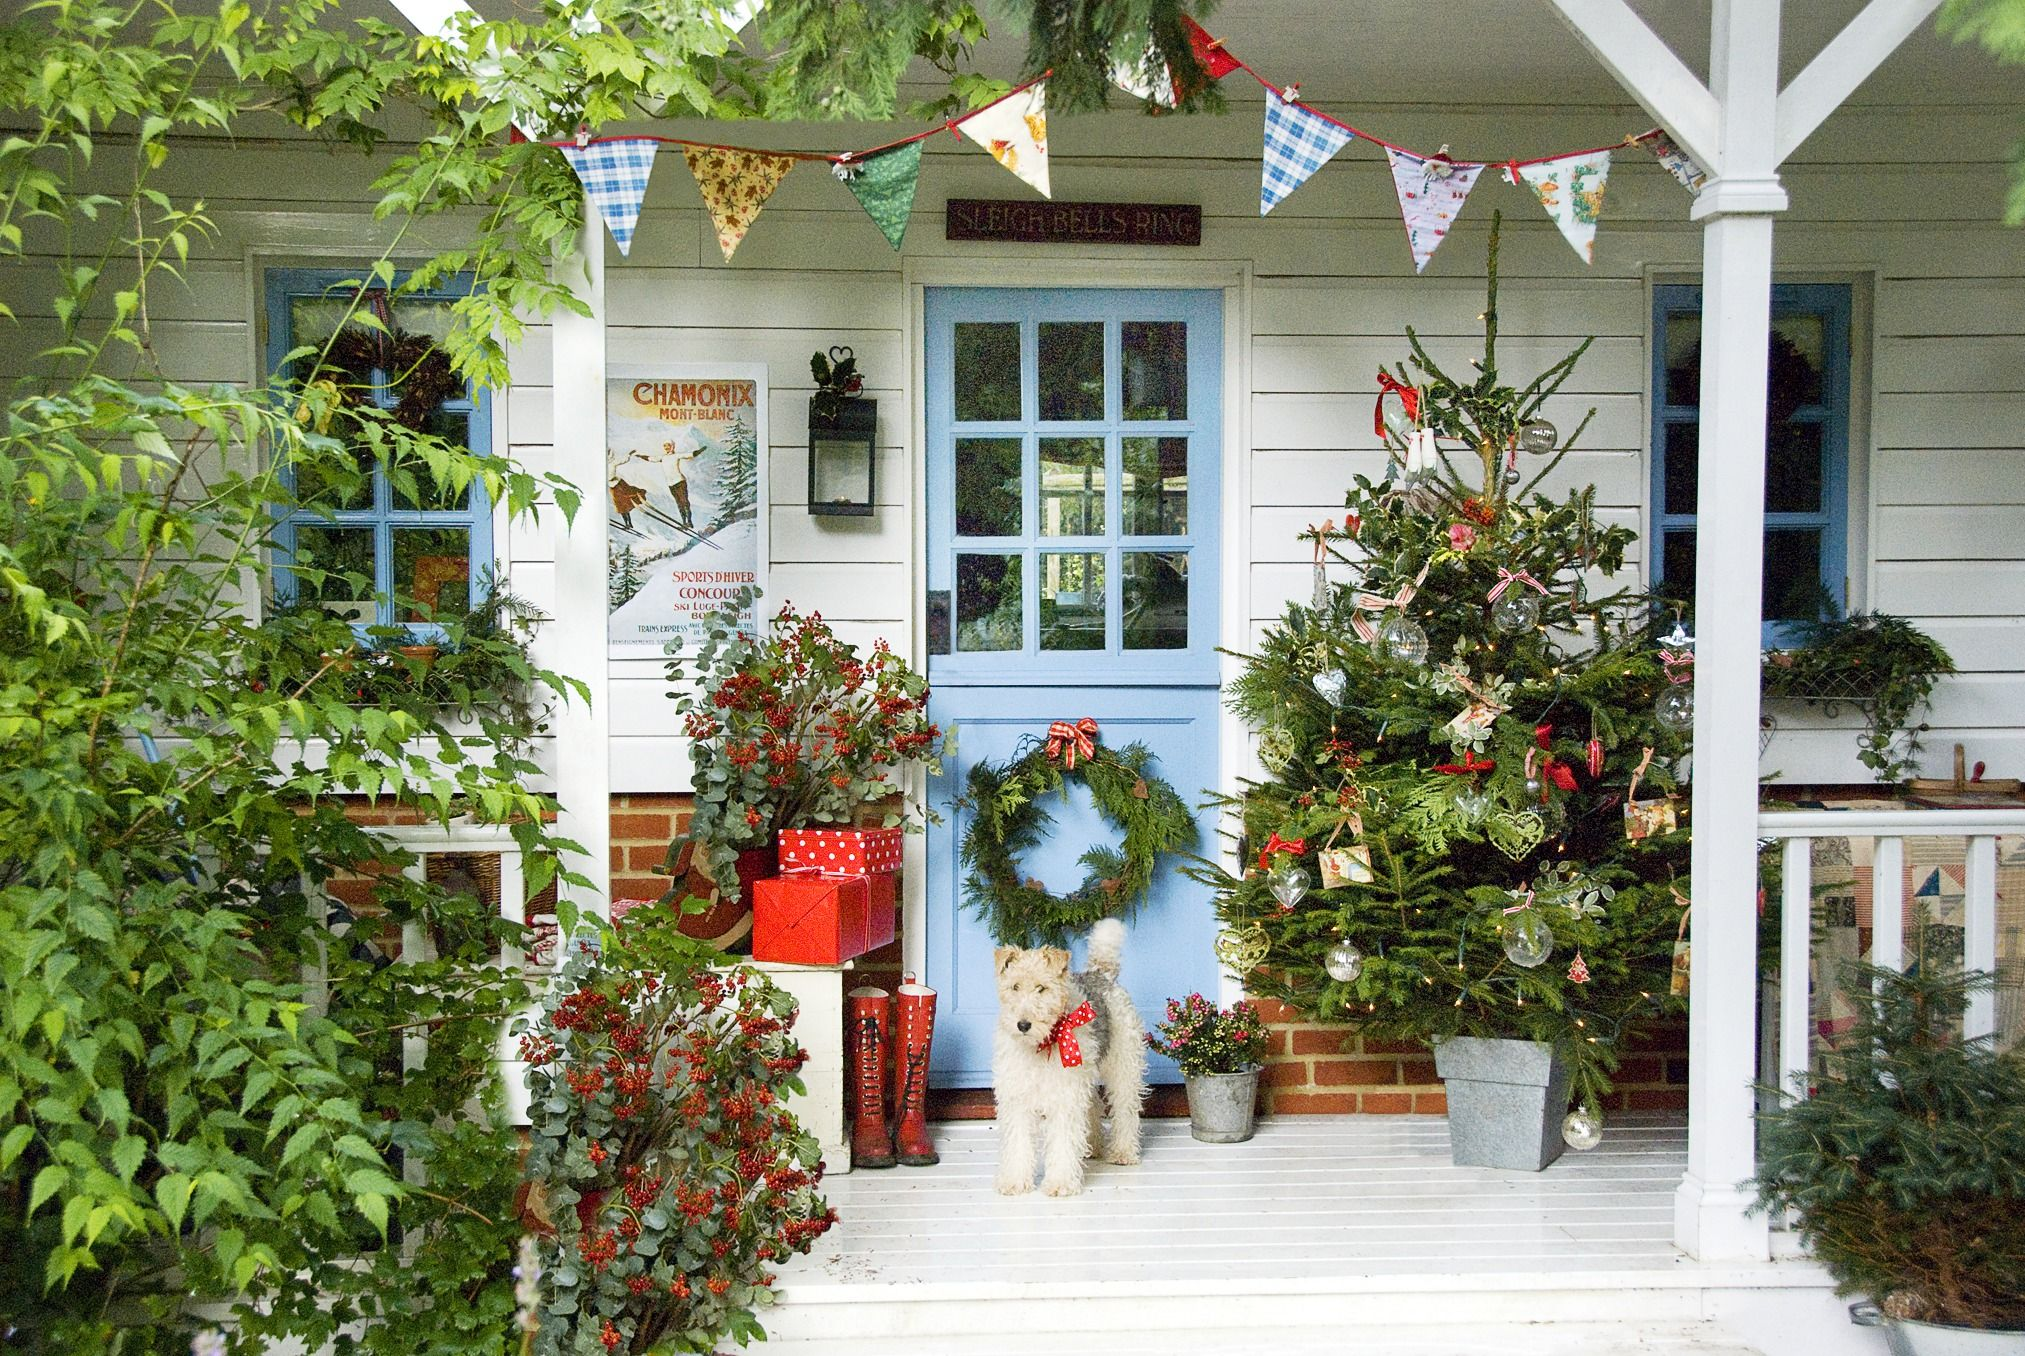 16 Best Christmas Porch Decorations 1619 - Outdoor Christmas Decor